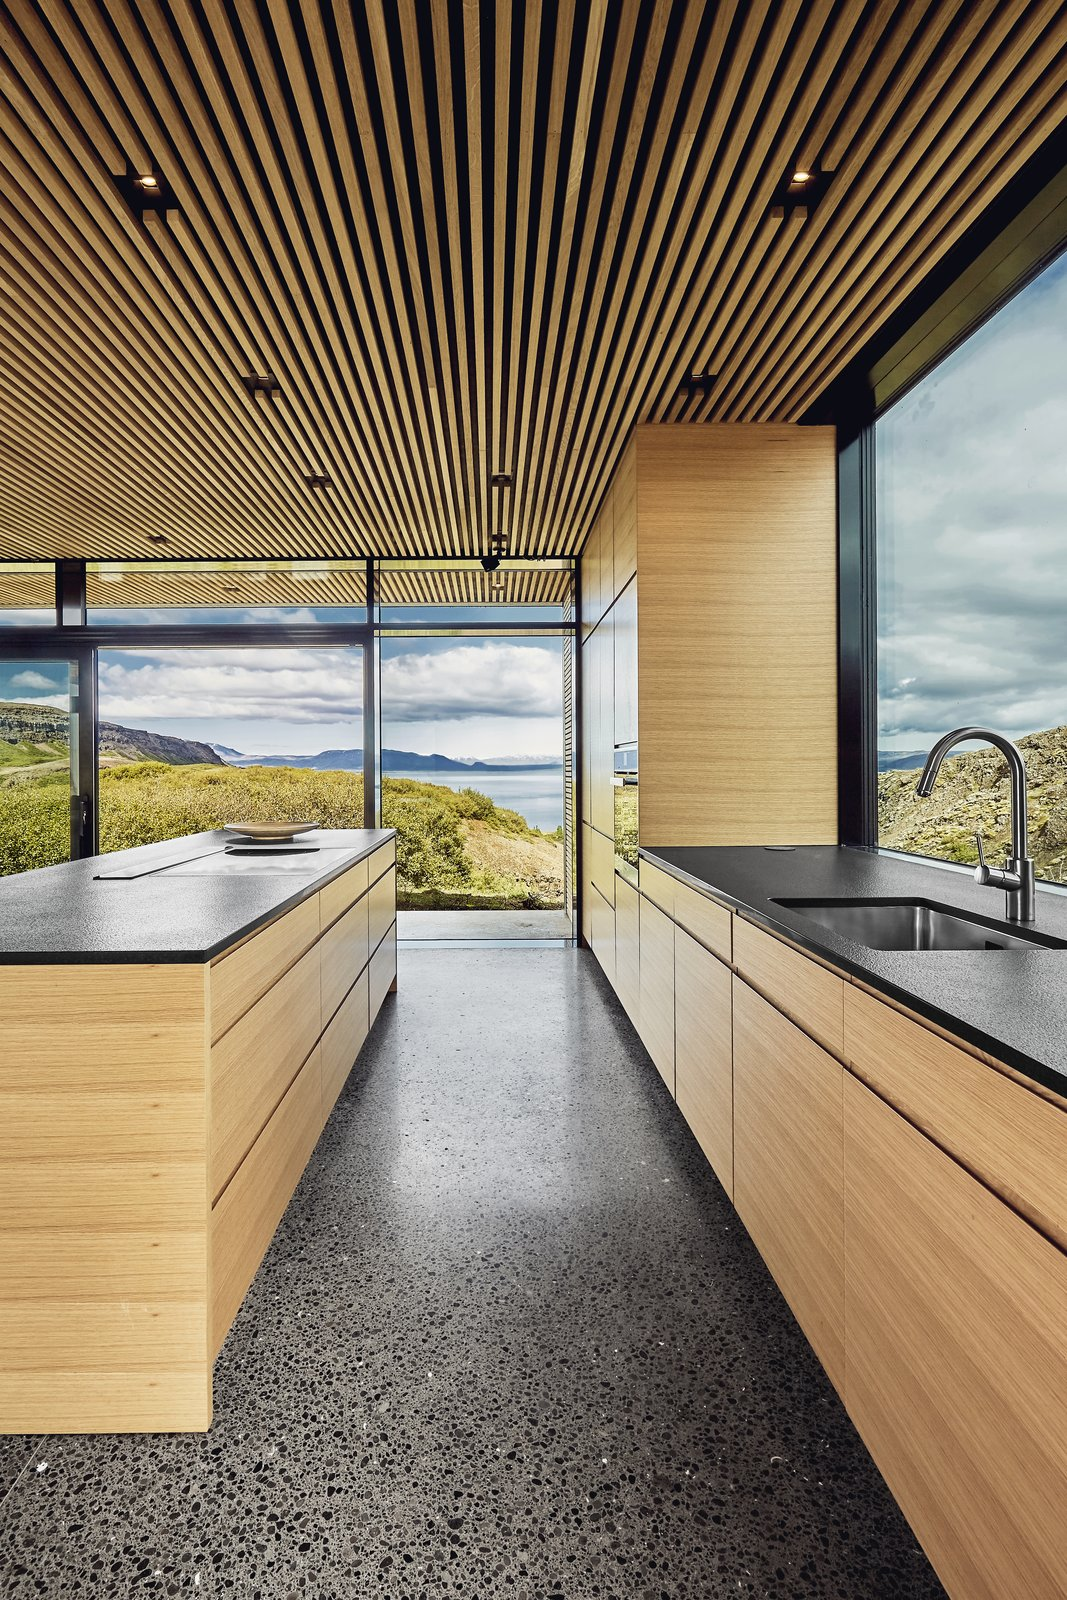 Kitchen, Undermount, Recessed, Wood, Wall Oven, Cooktops, and Concrete The view is framed from every angle.  Best Kitchen Cooktops Recessed Wall Oven Wood Concrete Photos from A Timber-and-Concrete Summer House in Iceland Boasts Breathtaking Views